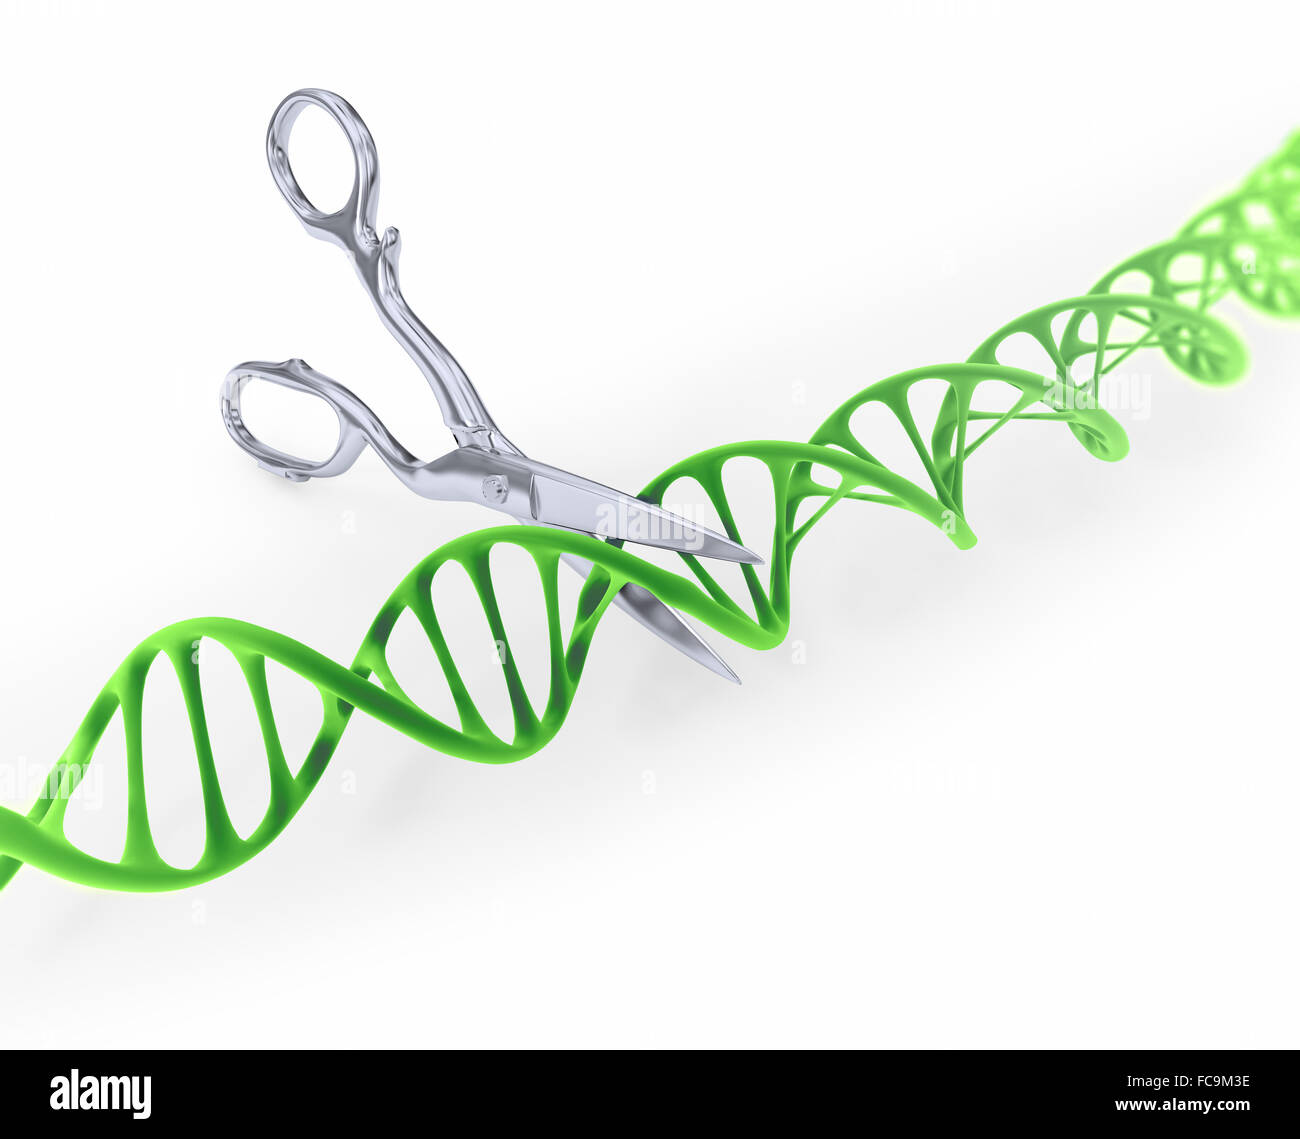 DNA strand cut with scissors - Gene editing conceptual illustration - Stock Image